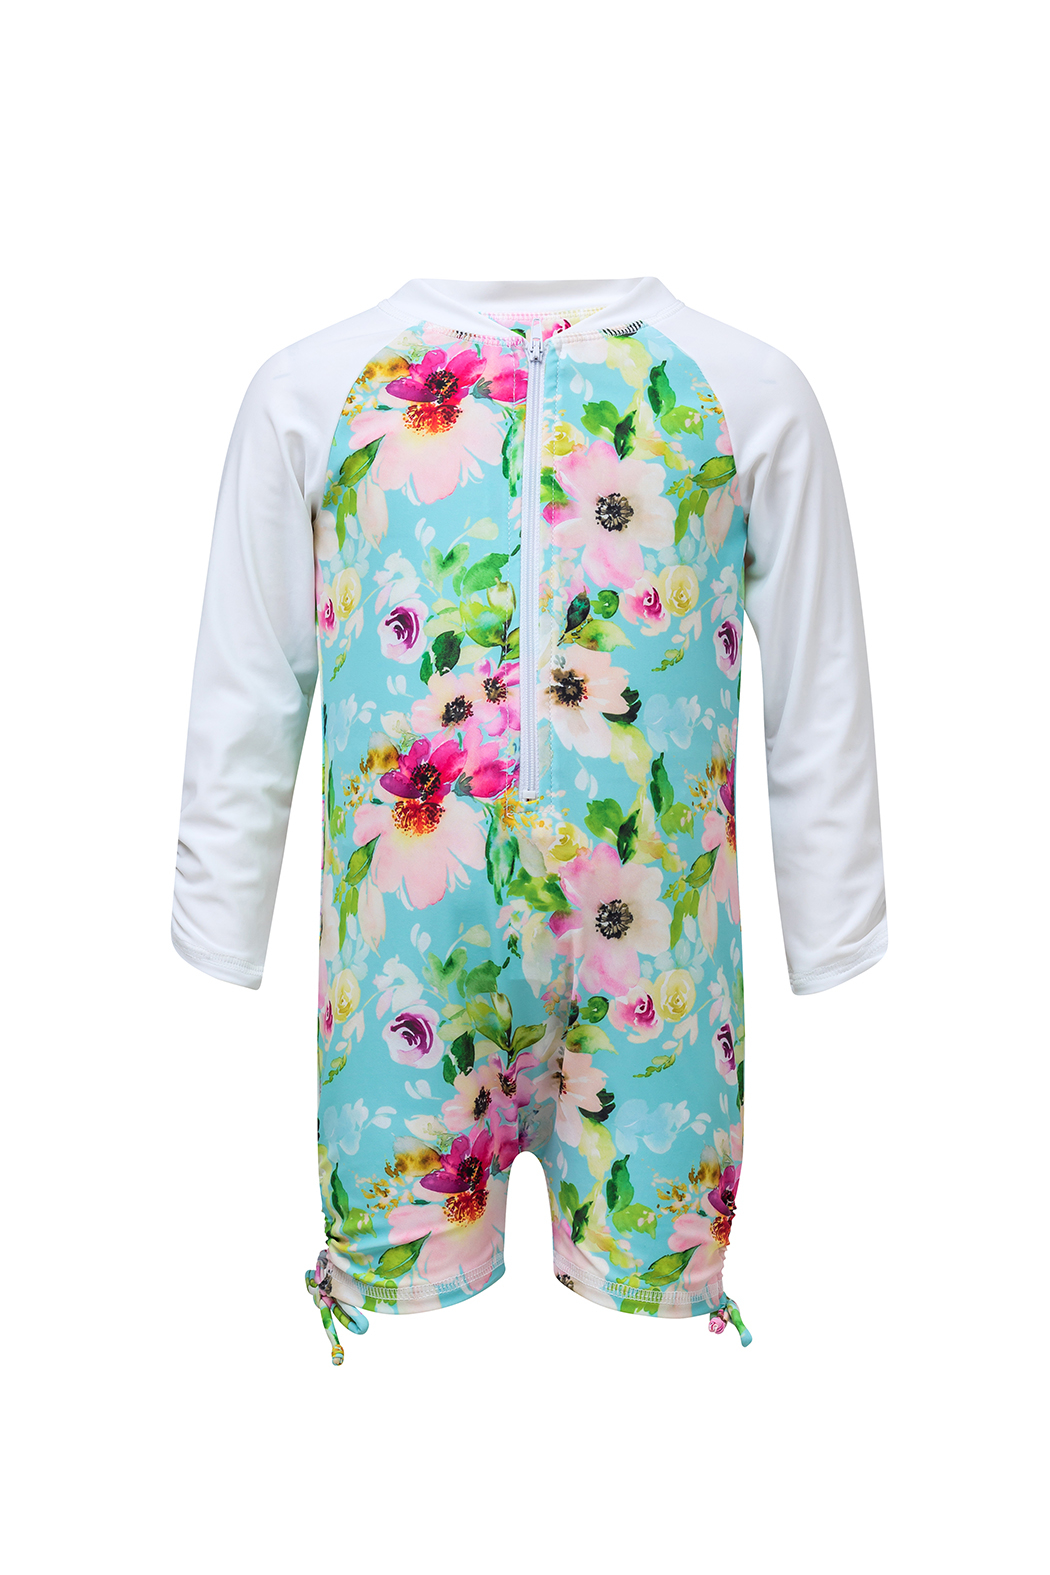 Snapper Rock Watercolor Floral LS Sunsuit - Main Image